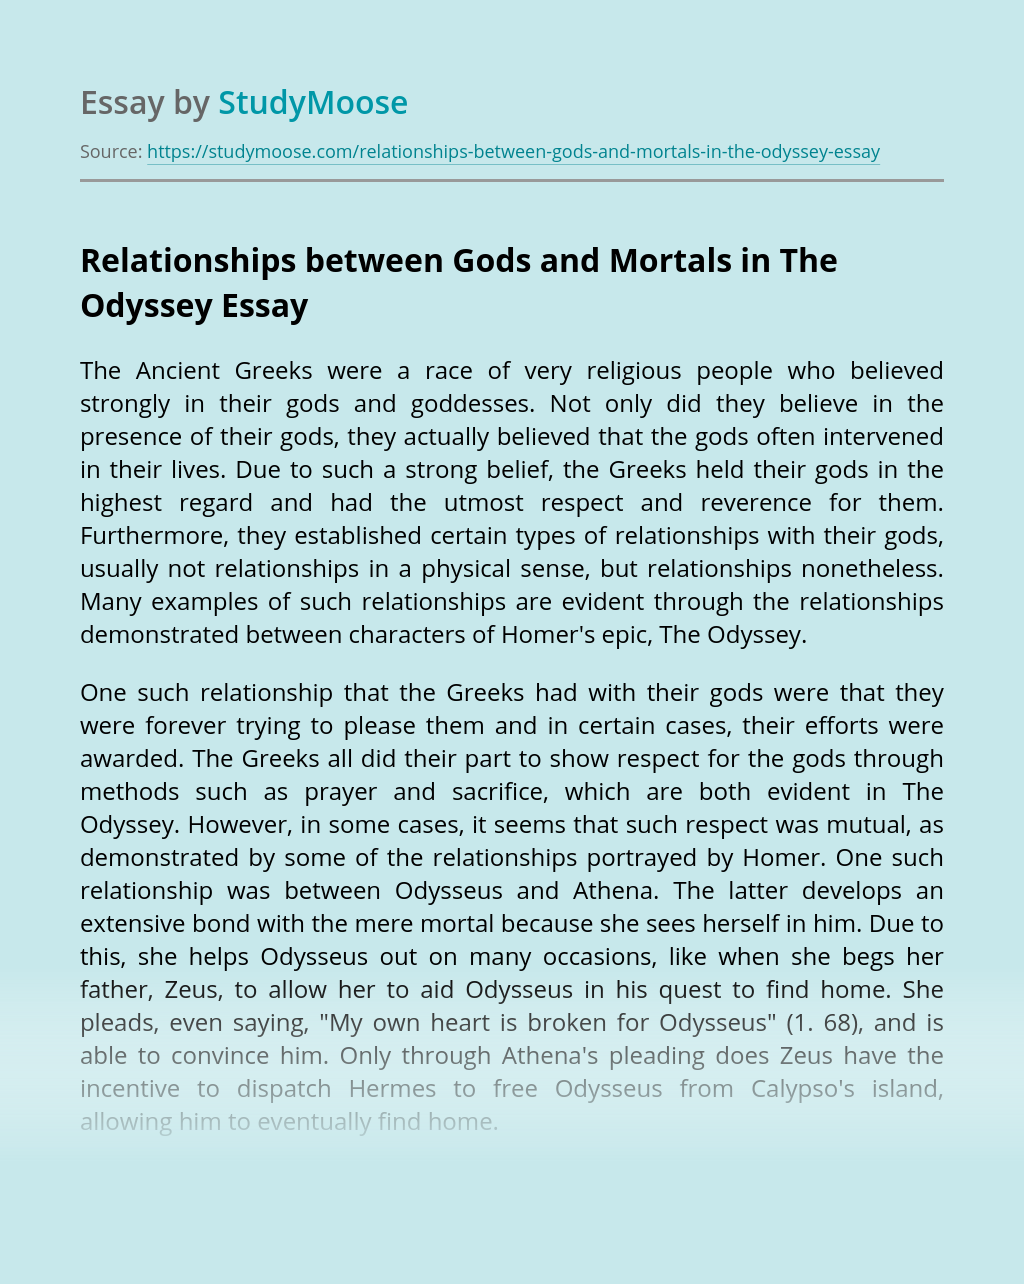 Relationships between Gods and Mortals in The Odyssey